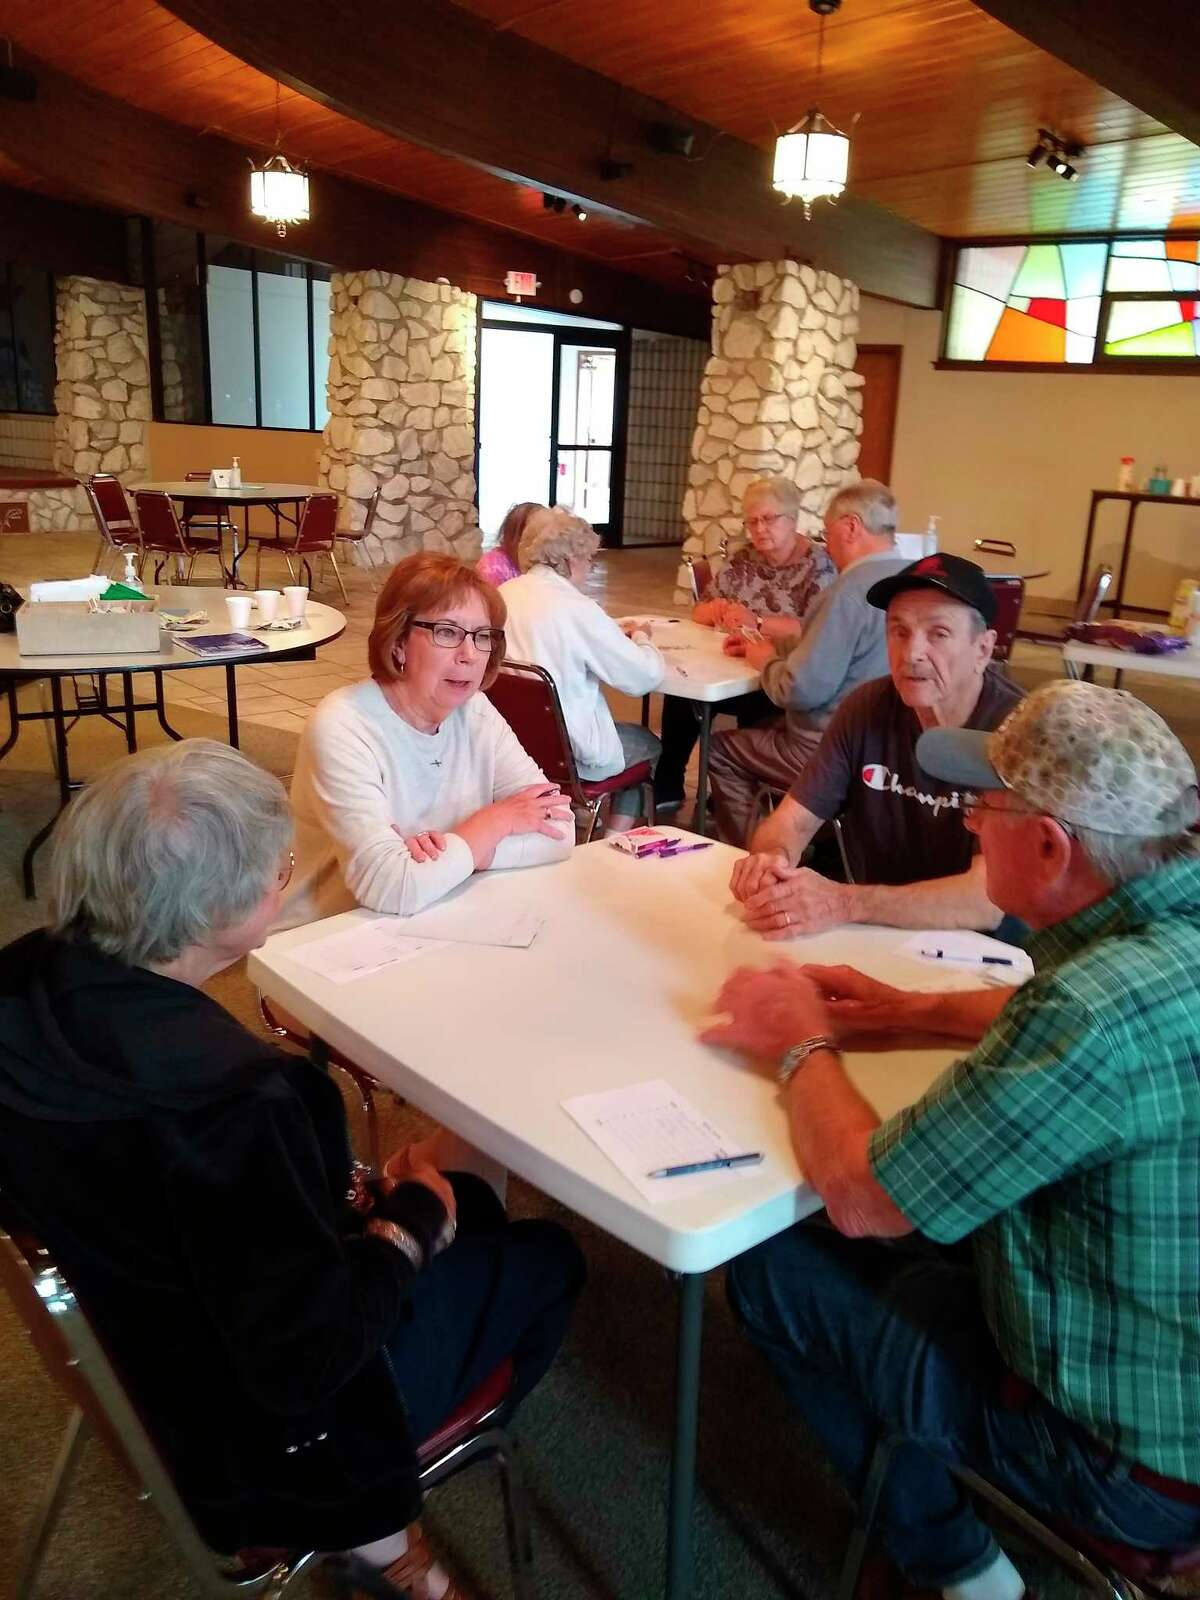 With the Manistee Senior Center opening 100%, the Monday afternoon Pinochle group is back in action. Many new and former activities have resumed. Cribbage, chess, and soon the bridge group will start back up again. (Courtesy Photo)